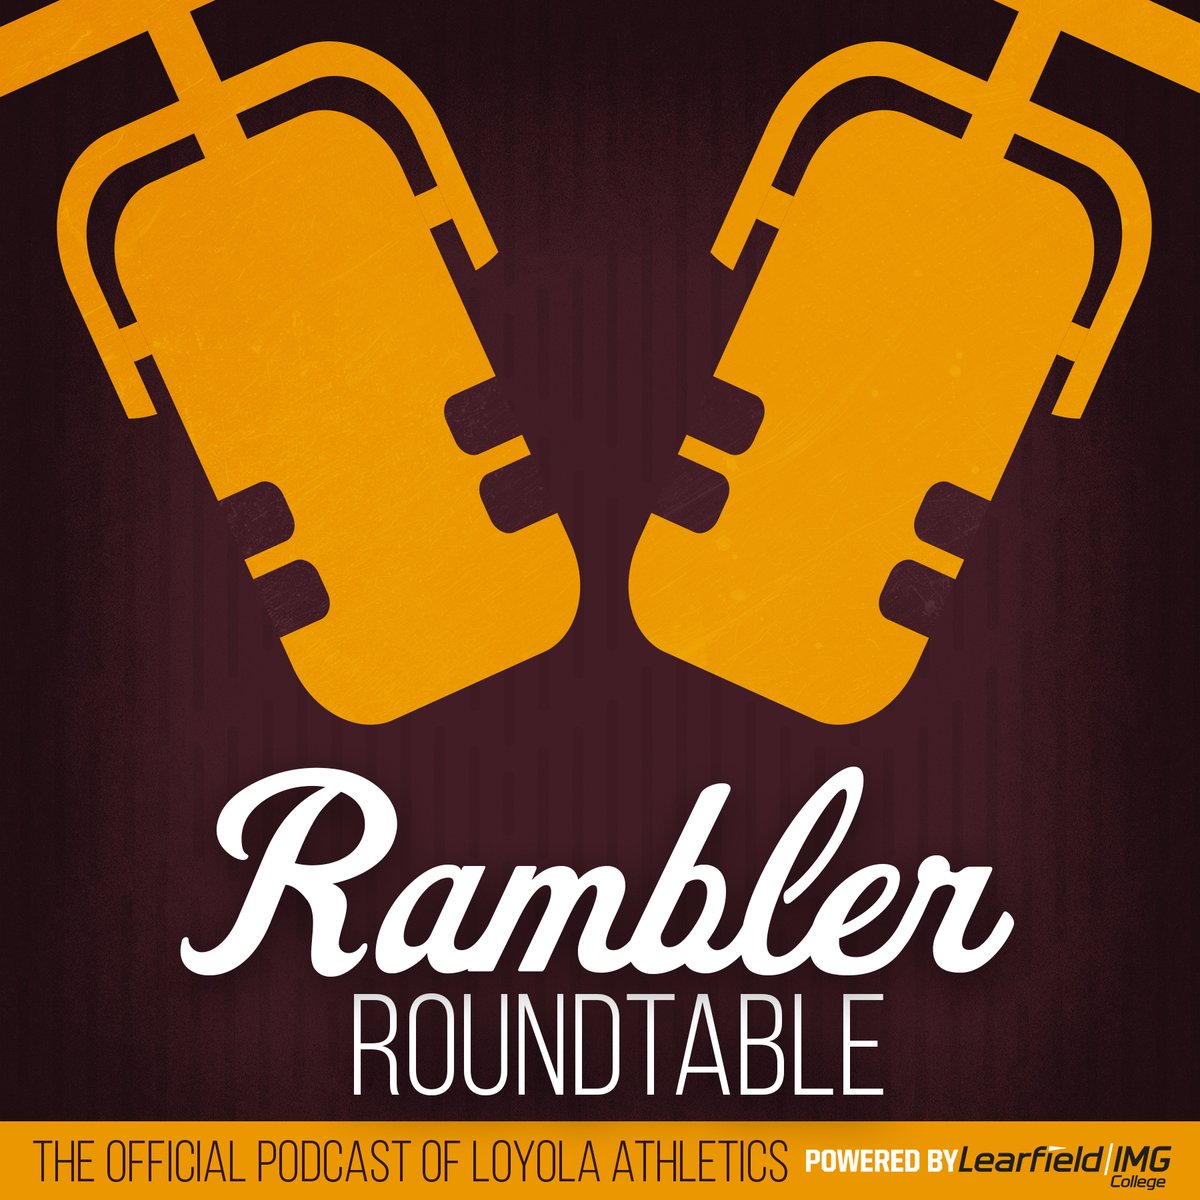 🆕 episode of 𝑹𝒂𝒎𝒃𝒍𝒆𝒓 𝑹𝒐𝒖𝒏𝒅𝒕𝒂𝒃𝒍𝒆 👉 Award-winning director Patrick Creadon previews his upcoming documentary which chronicles the @RamblersMBB 1963 national champions incredible journey!  Listen here | https://t.co/VMHgpWOFpd  #OnwardLU https://t.co/Q3bMqcrrLS